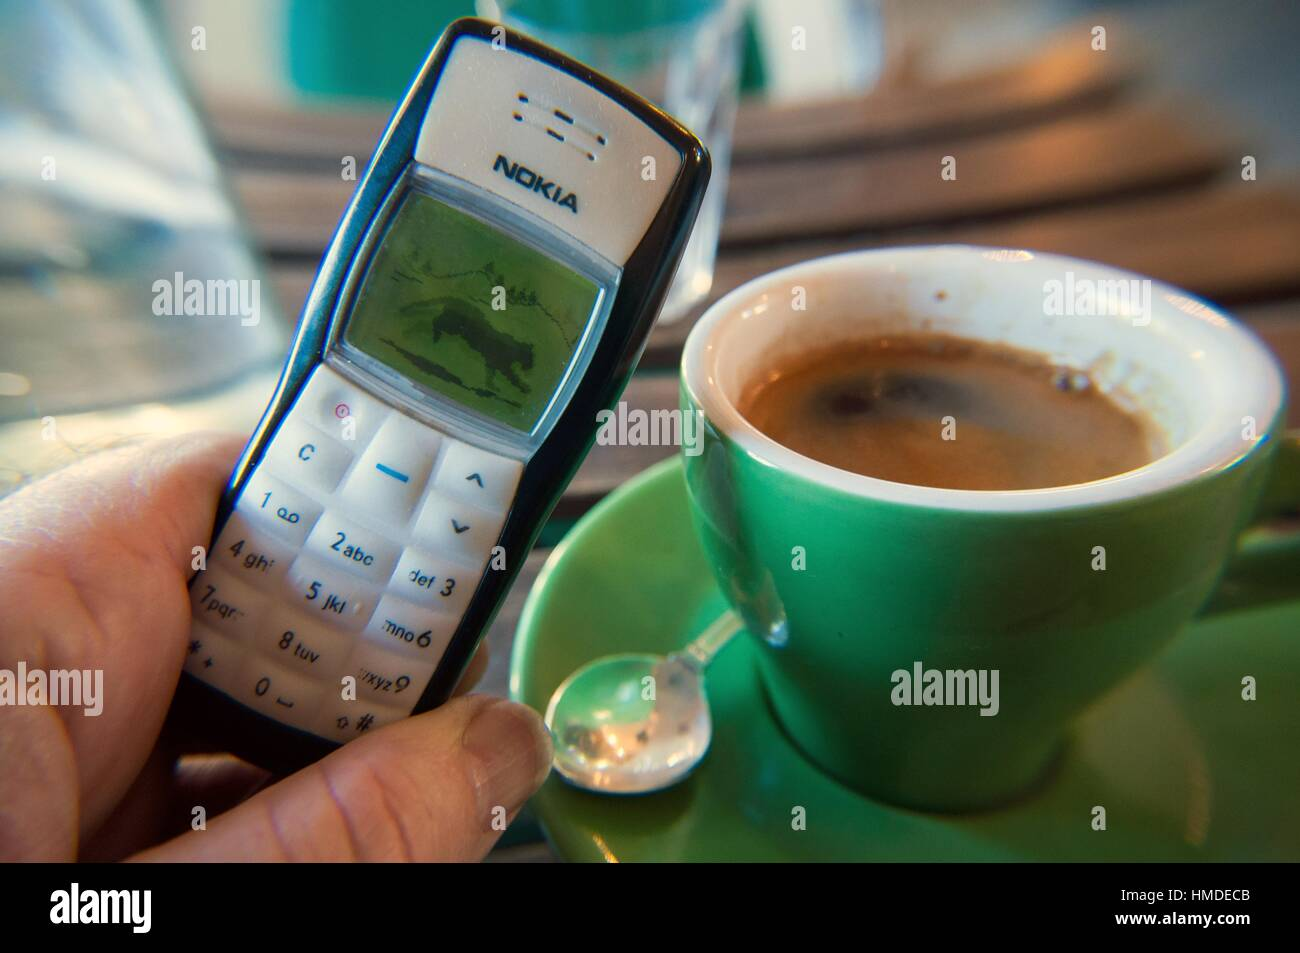 Coffee cup and retro Nokia phone, coffee shop, Melbourne, Victoria, Australia - Stock Image